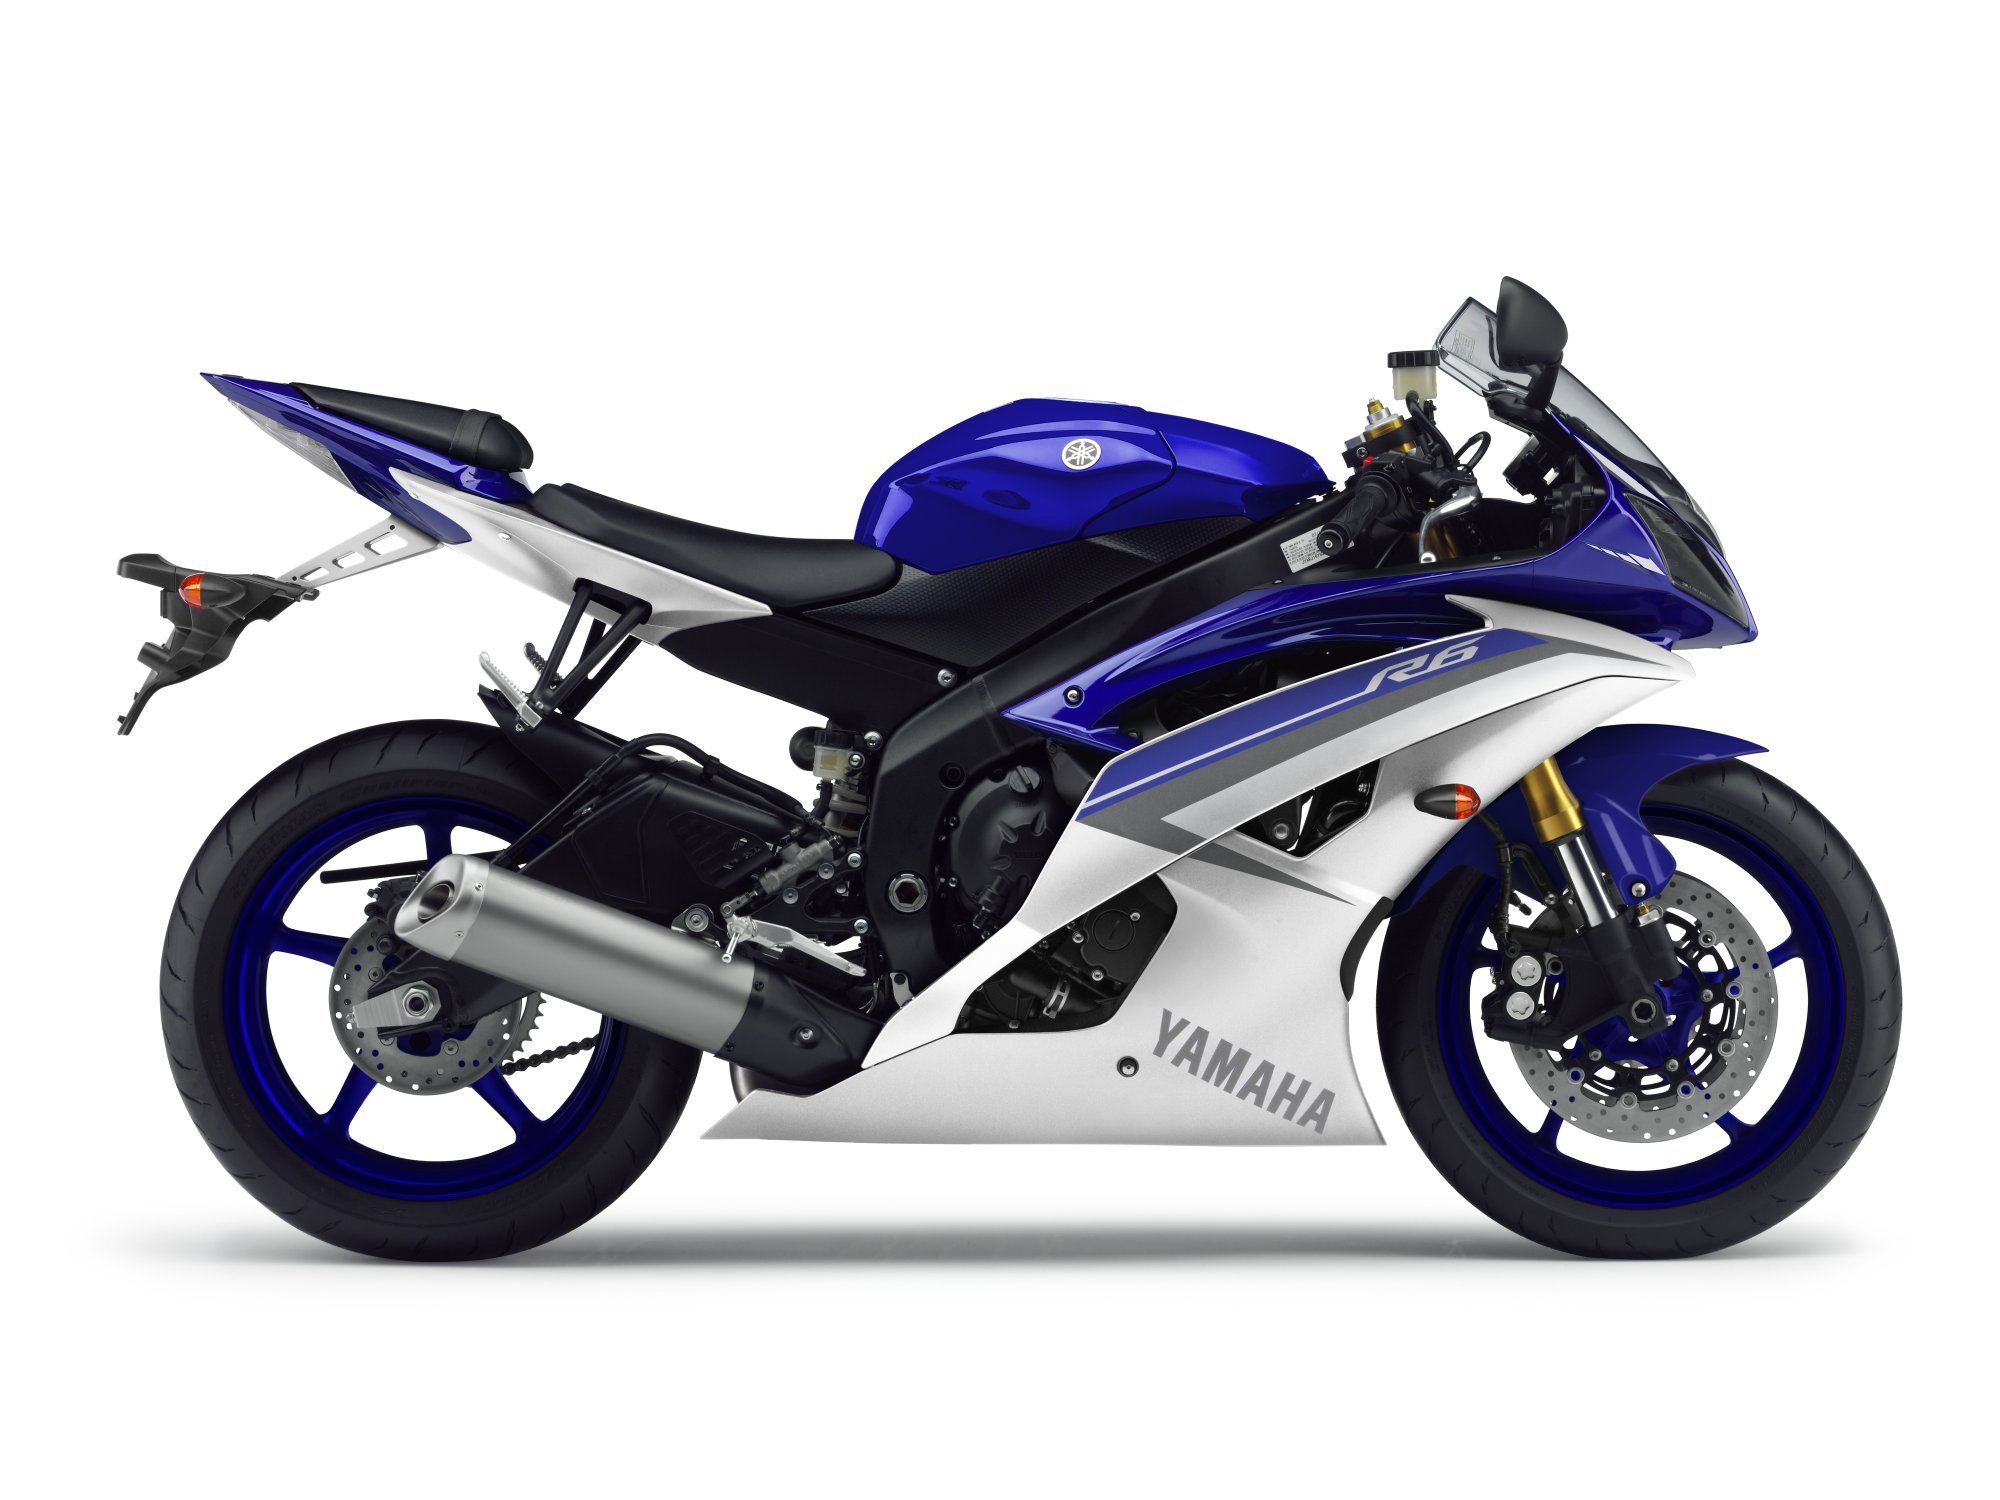 yamaha yzf r6. Black Bedroom Furniture Sets. Home Design Ideas